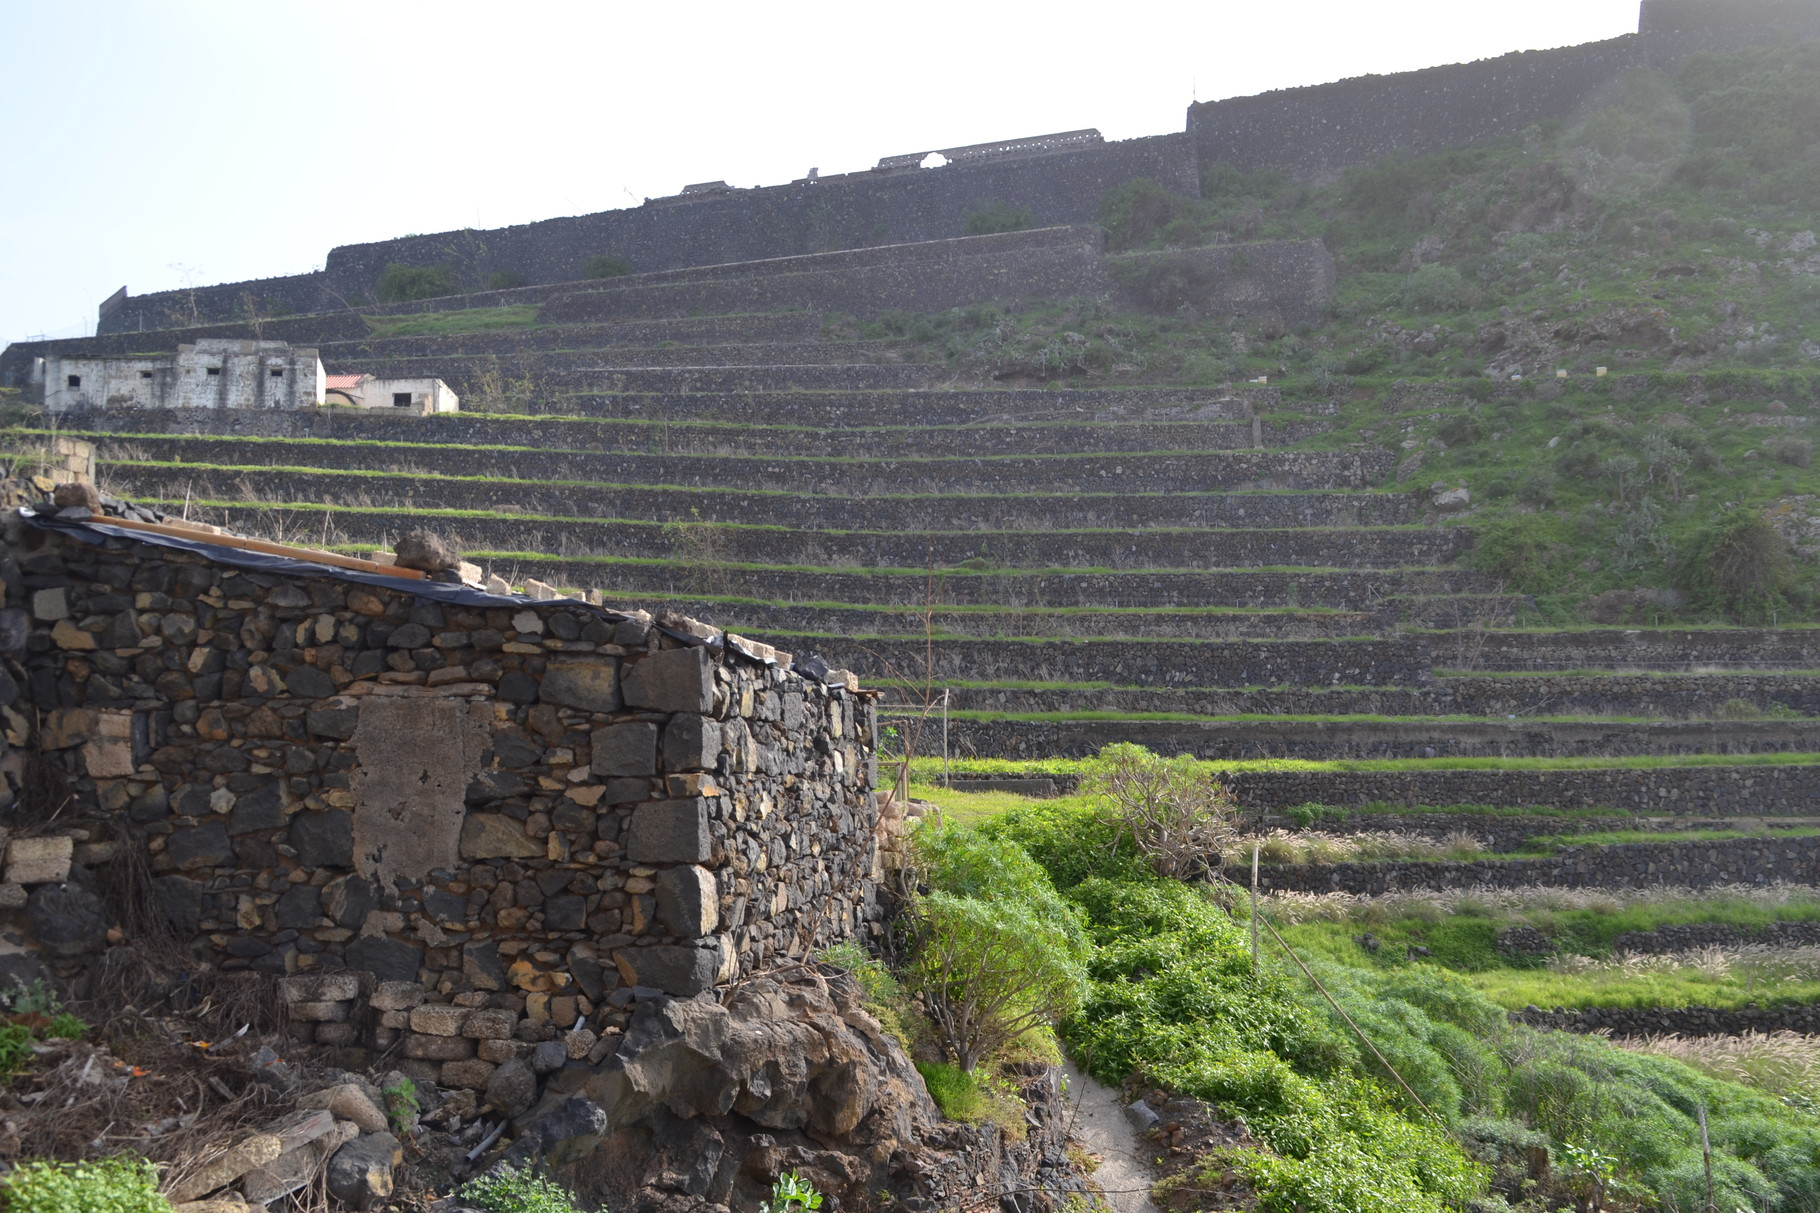 Terrace plantations, ancient way to grow food in Tenerife